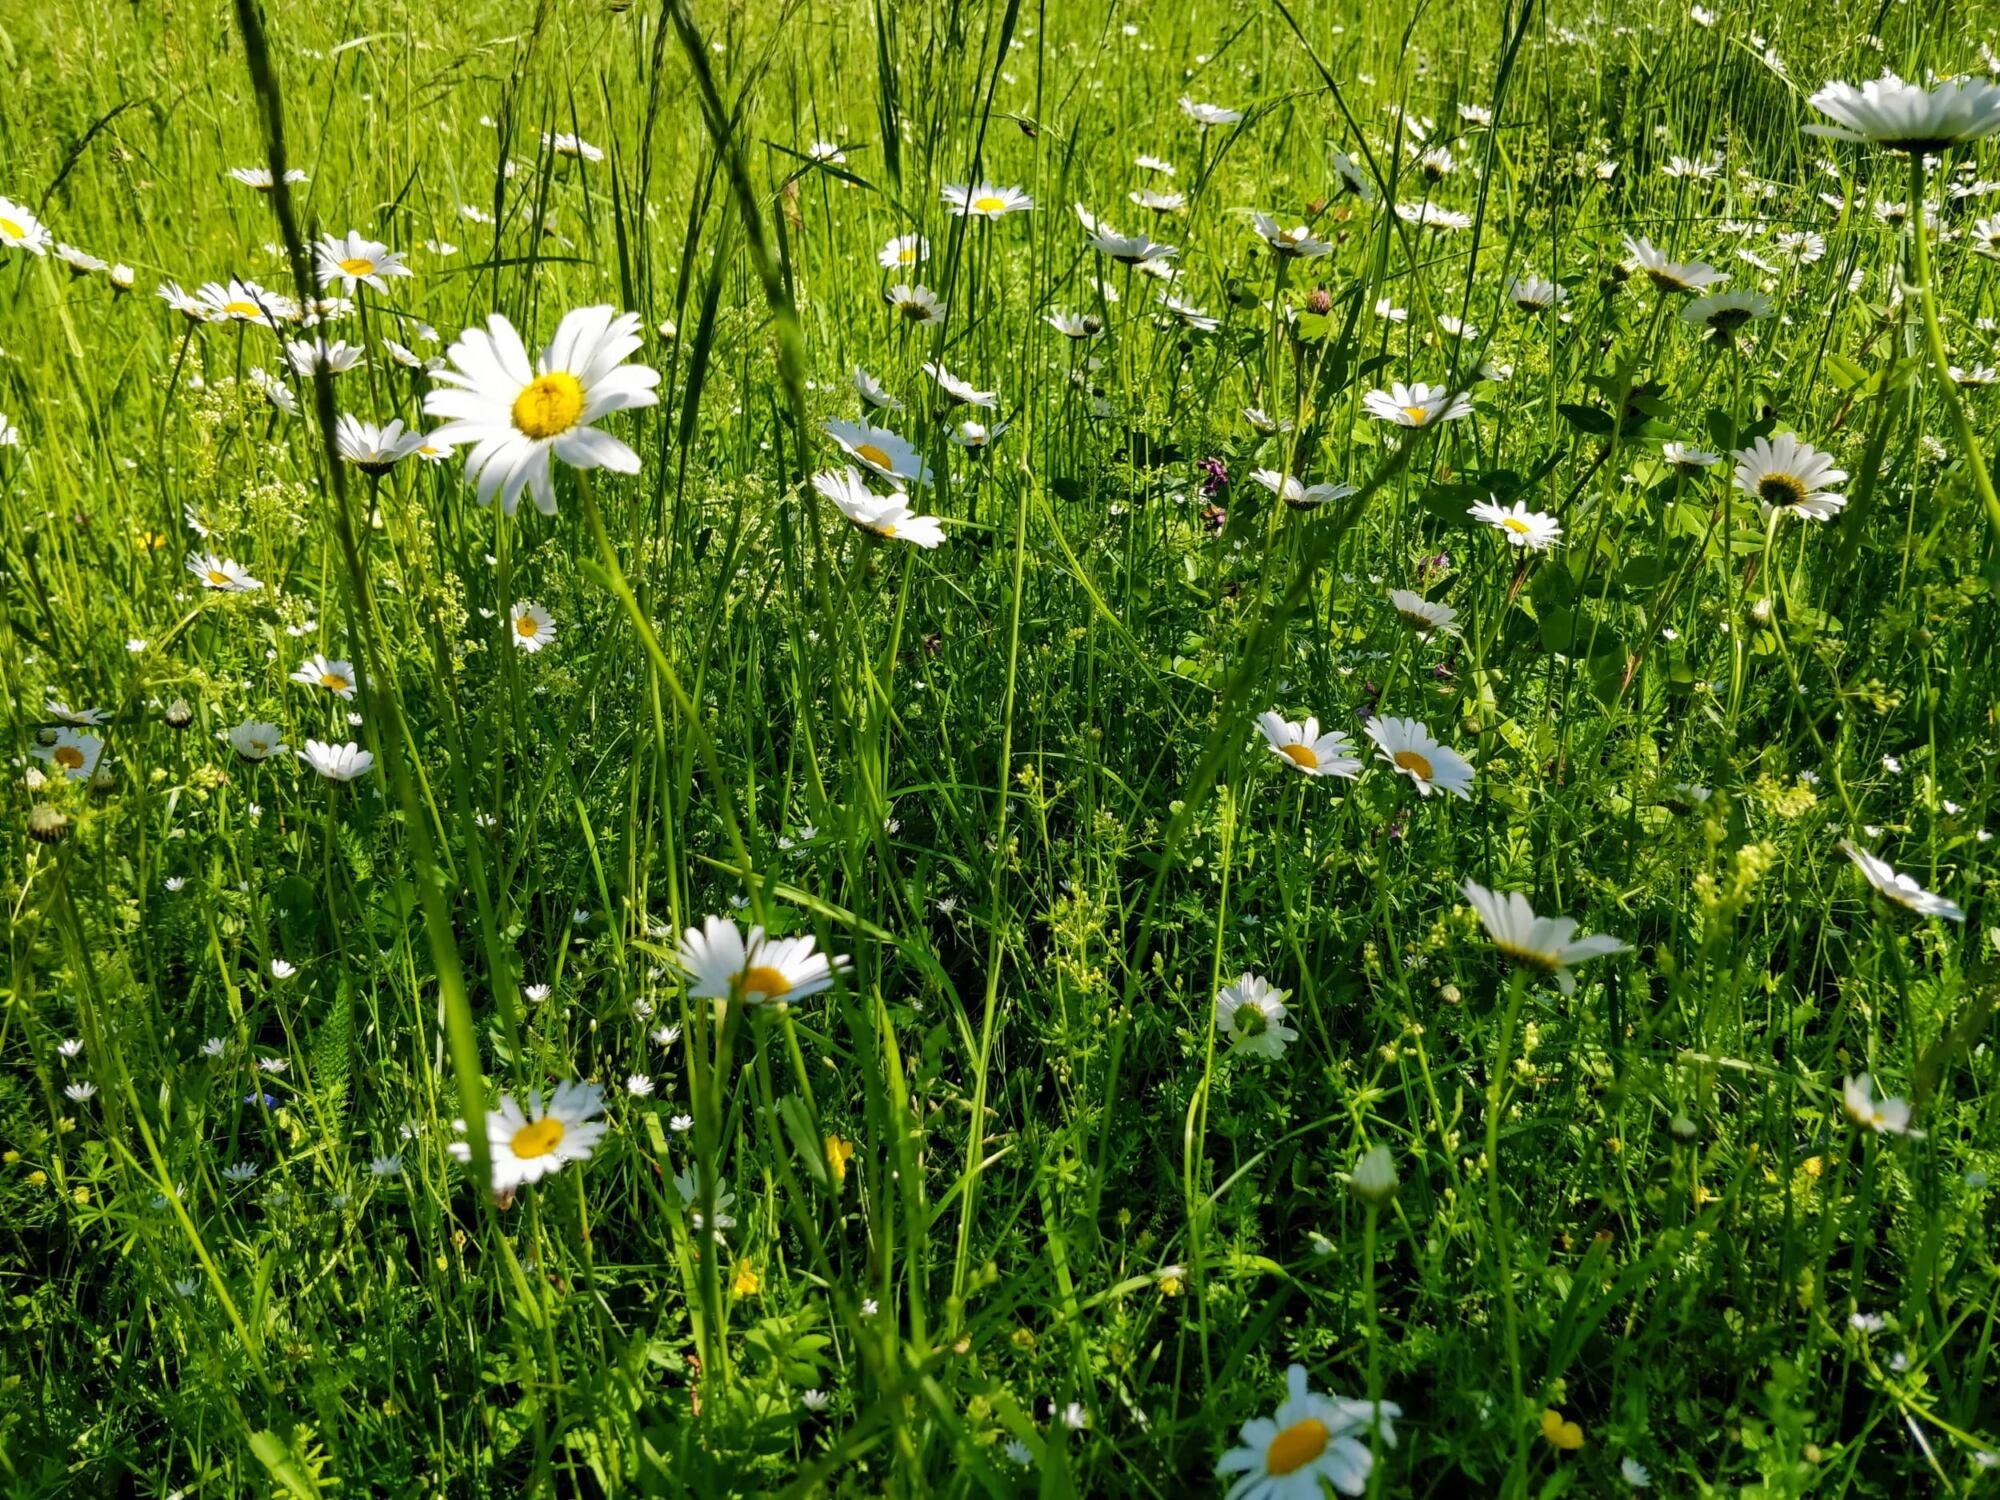 Meadow with daisies midsummer